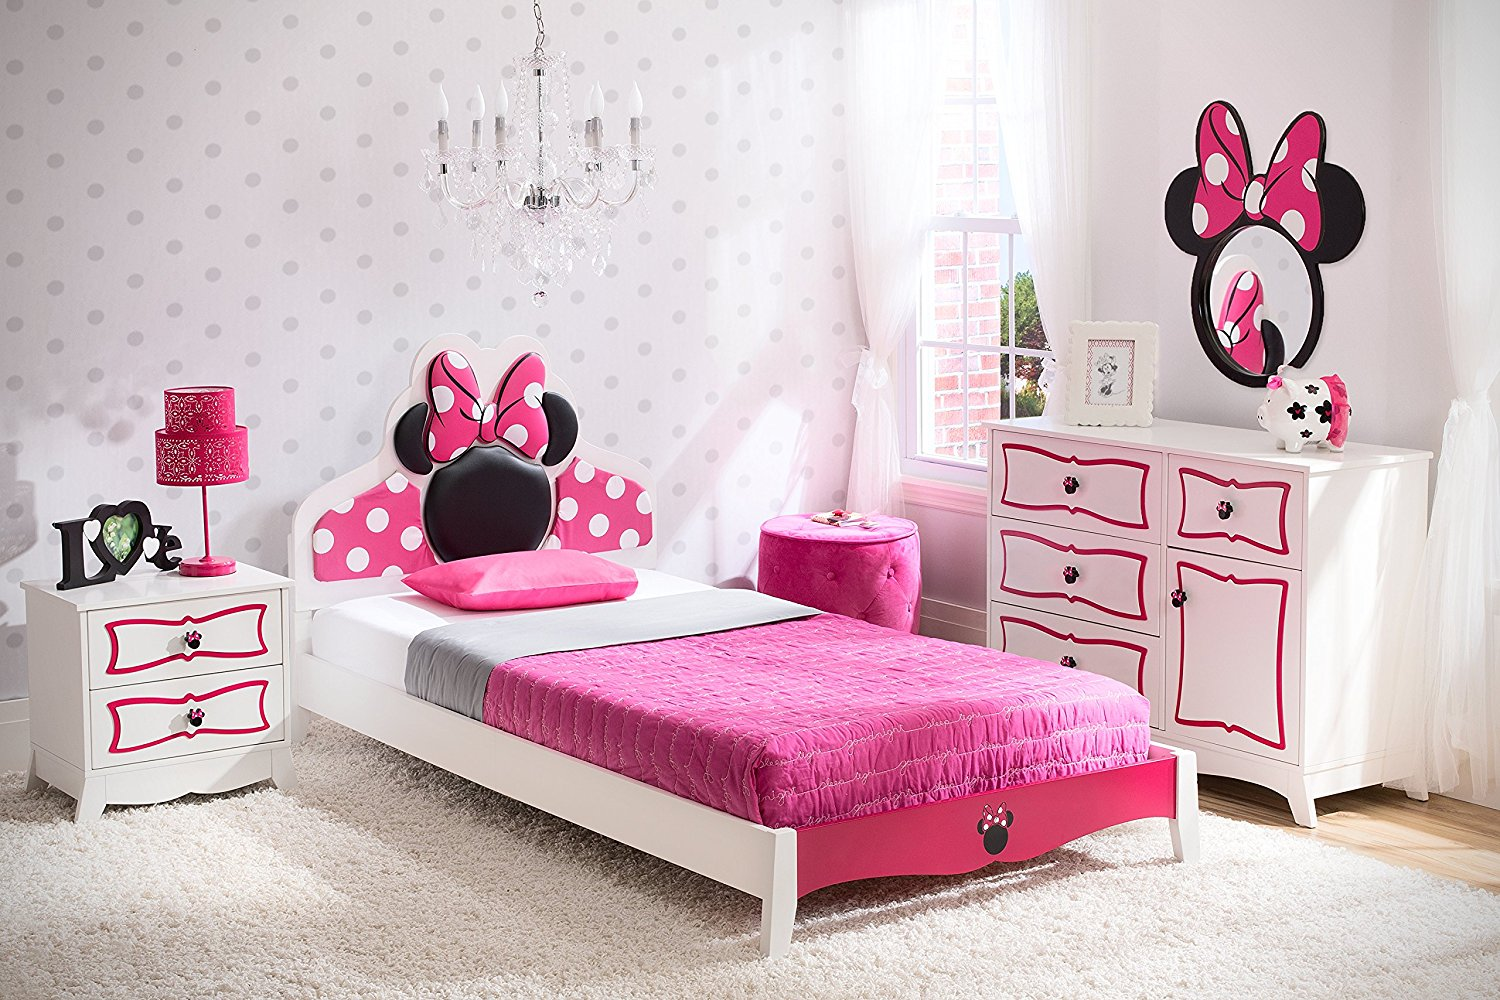 Mickey Mouse Nursery Wall Decor | Wall Stickers Mickey Mouse | Minnie Mouse Wall Decor